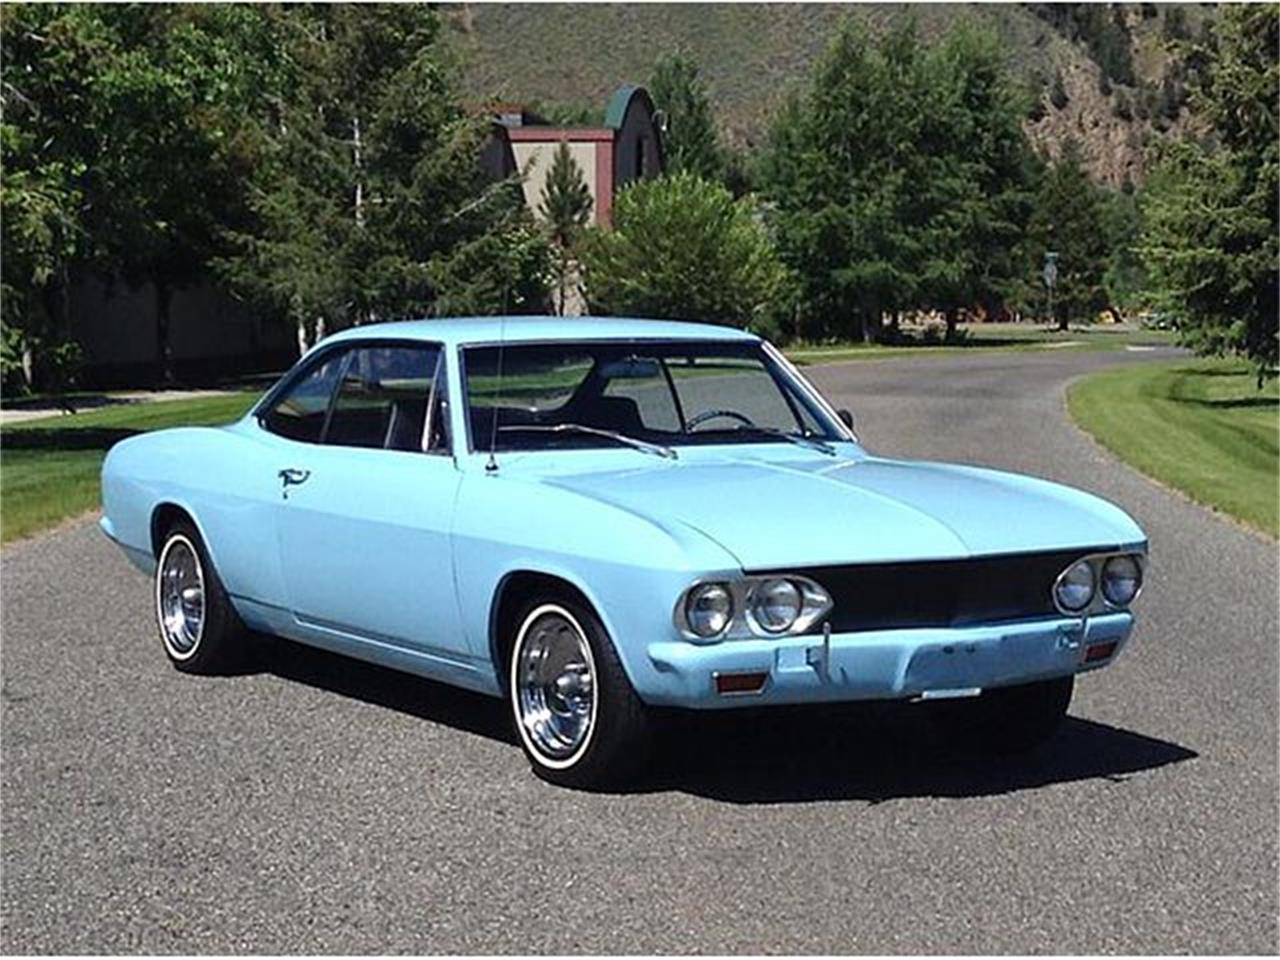 1967 chevrolet corvair monza for sale | classiccars | cc-754847